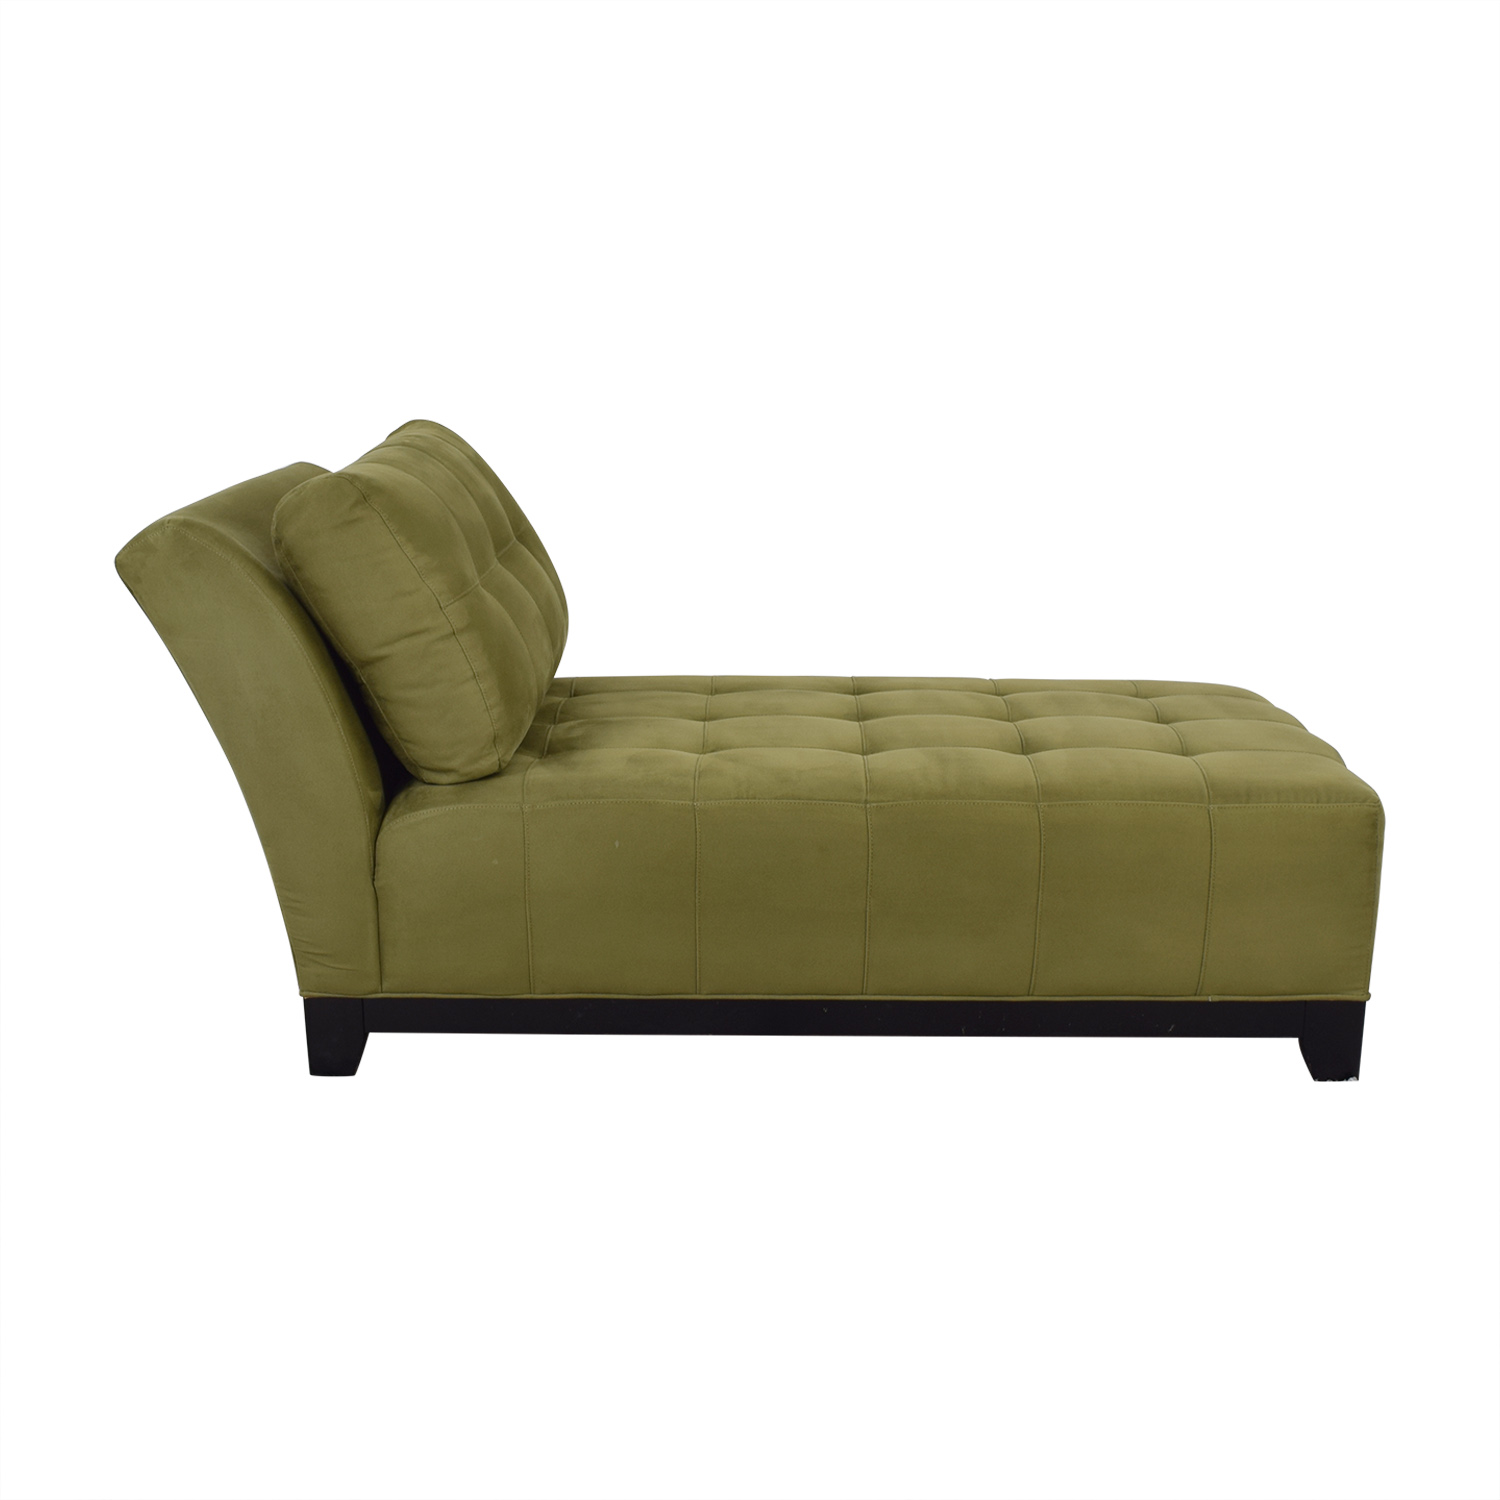 Raymour & Flanigan Raymour & Flanigan Tufted Chaise Lounge for sale